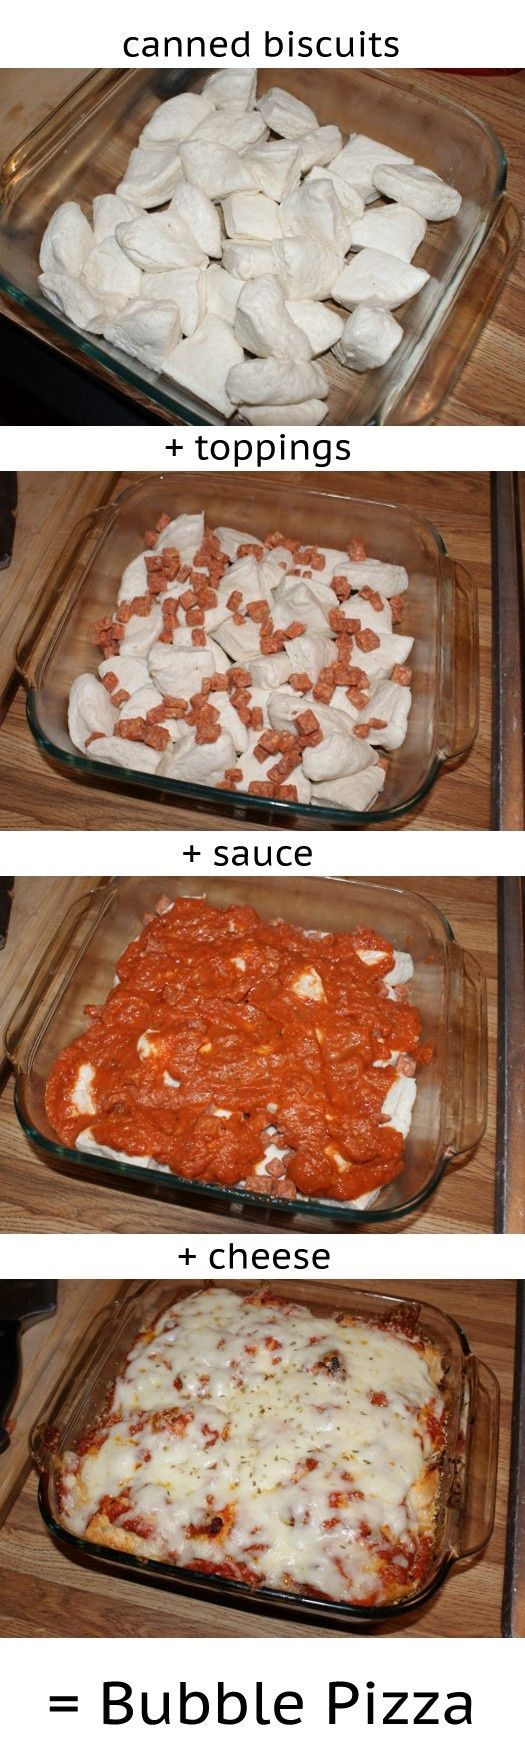 BUBBLE PIZZA. Preheat oven to 400°. Cut each biscuit into quarters.  Place the biscuit pieces in a greased 8 x 8 glass baking dish. Top with sauce and pepperoni, sausage, etc. Bake uncovered for 20 minutes. Remove from oven